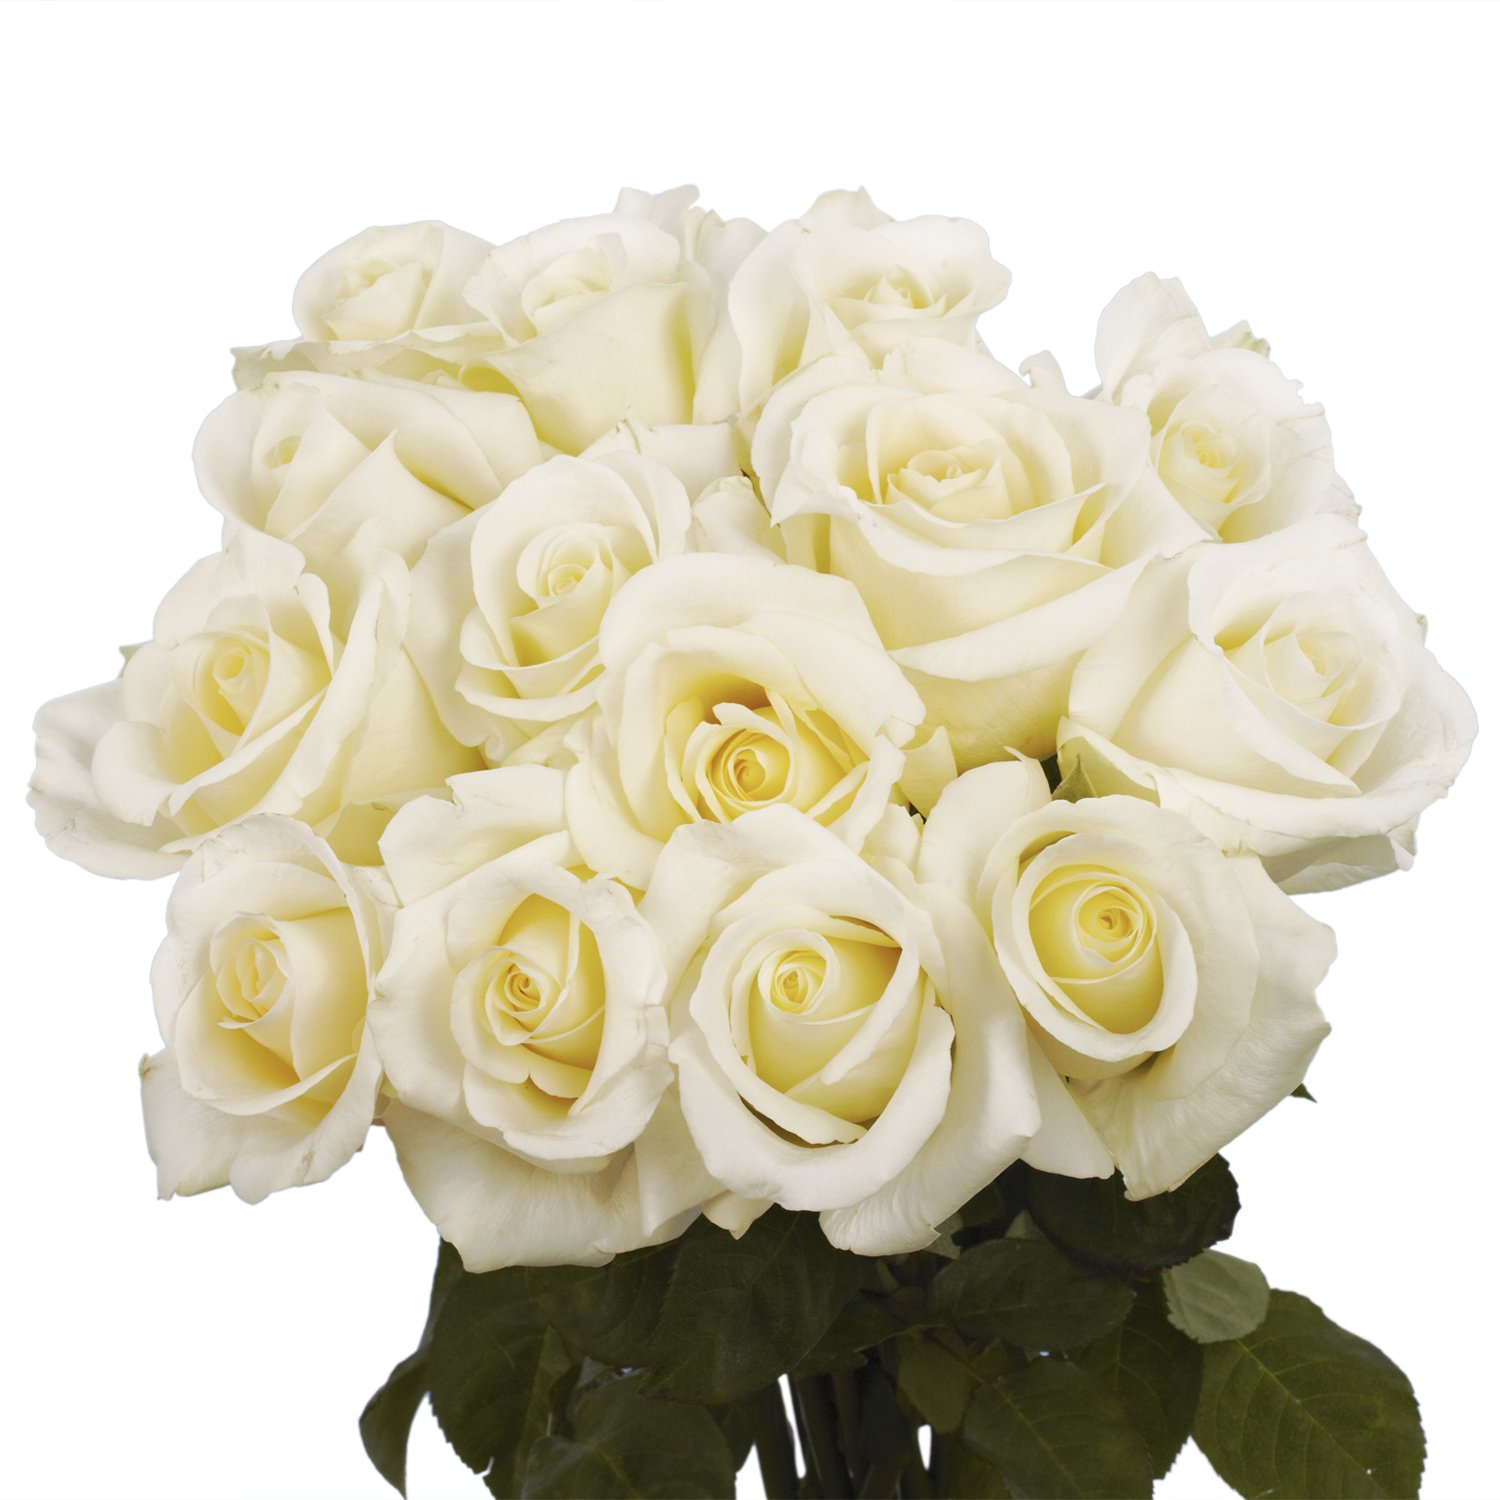 GlobalRose 50 Fresh Cut White Roses- Beautiful Fresh Flowers- Lovely Blooms